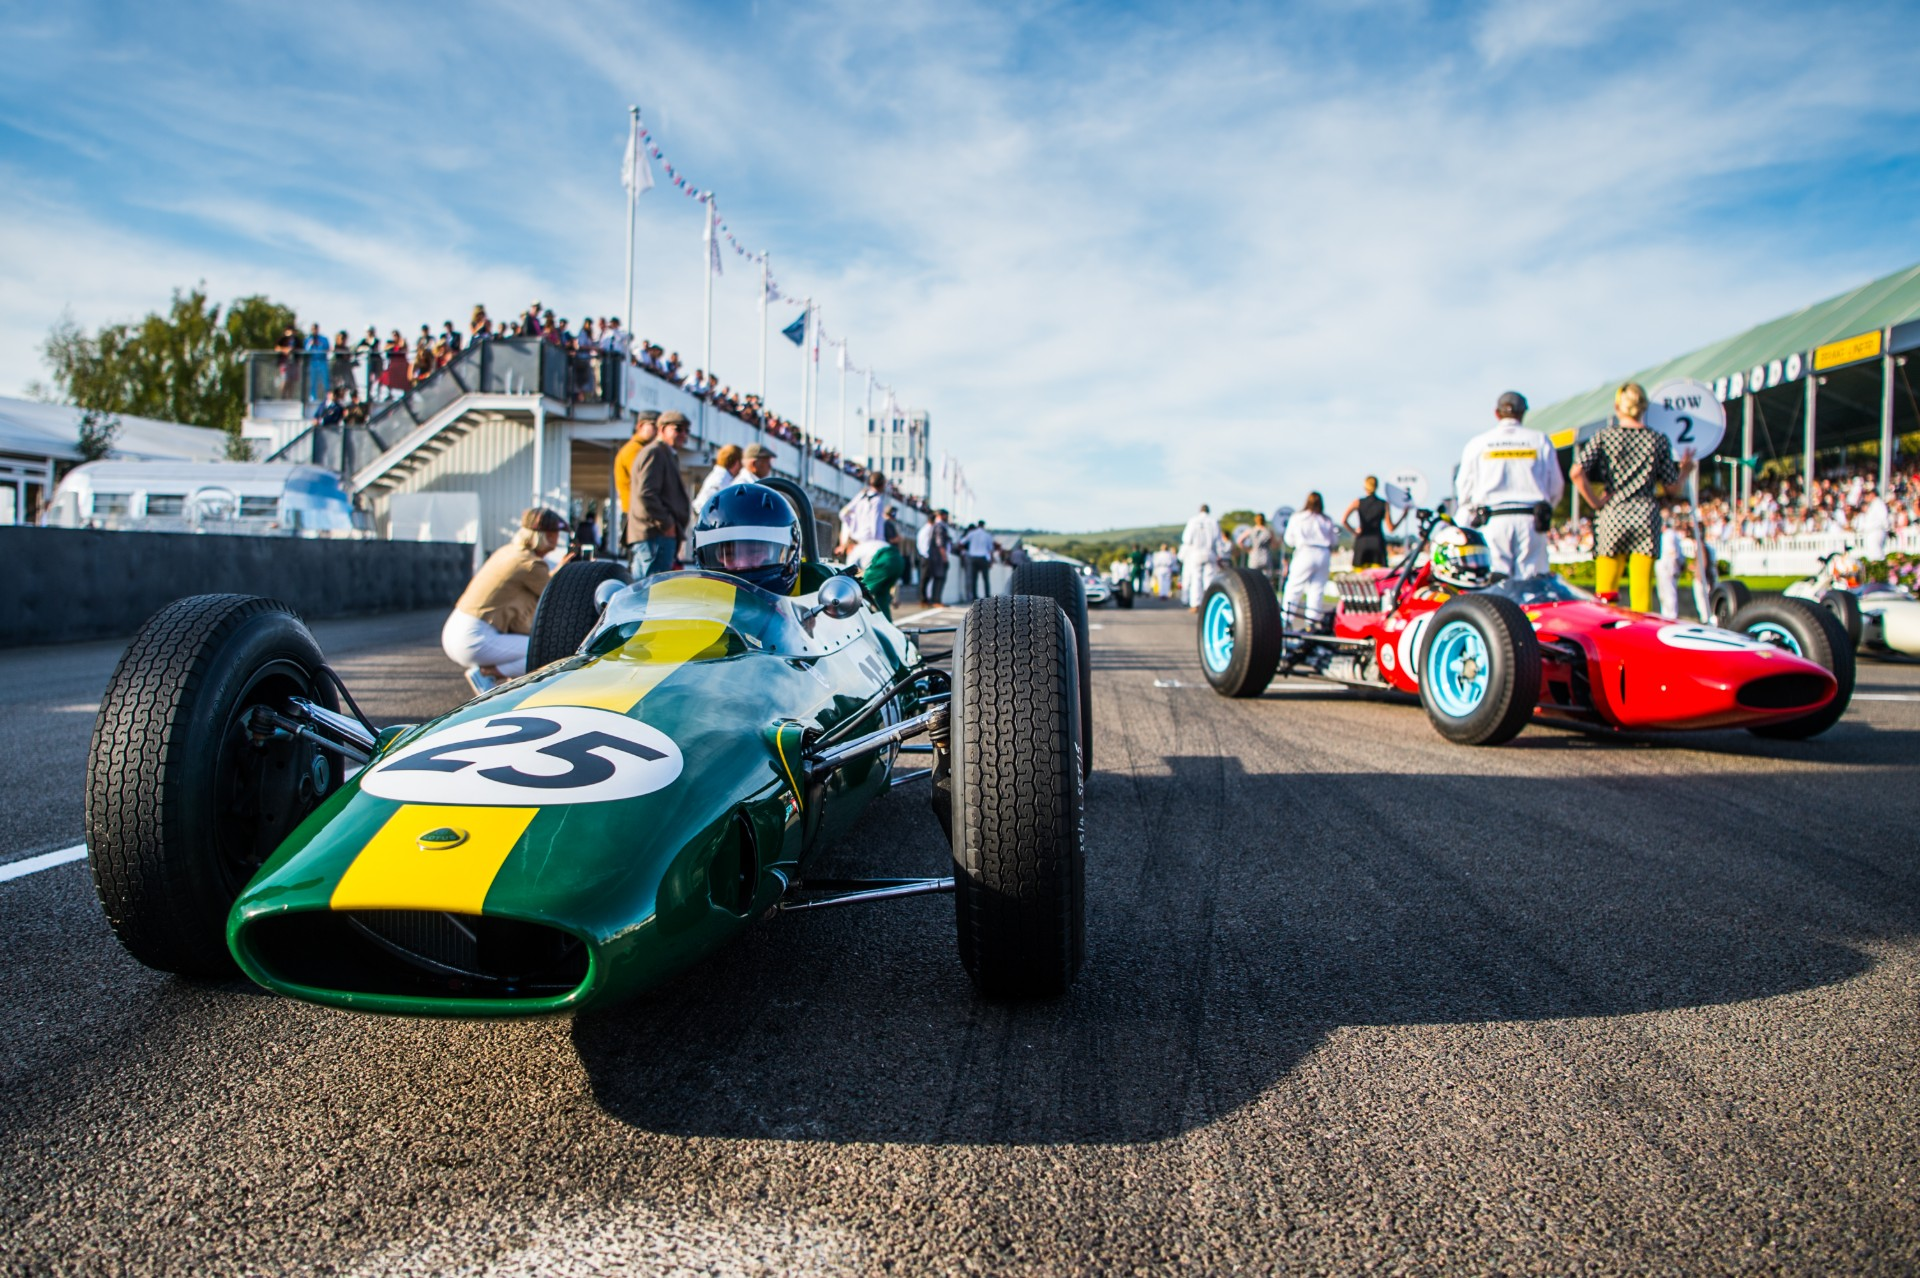 Goodwood Revival 2019